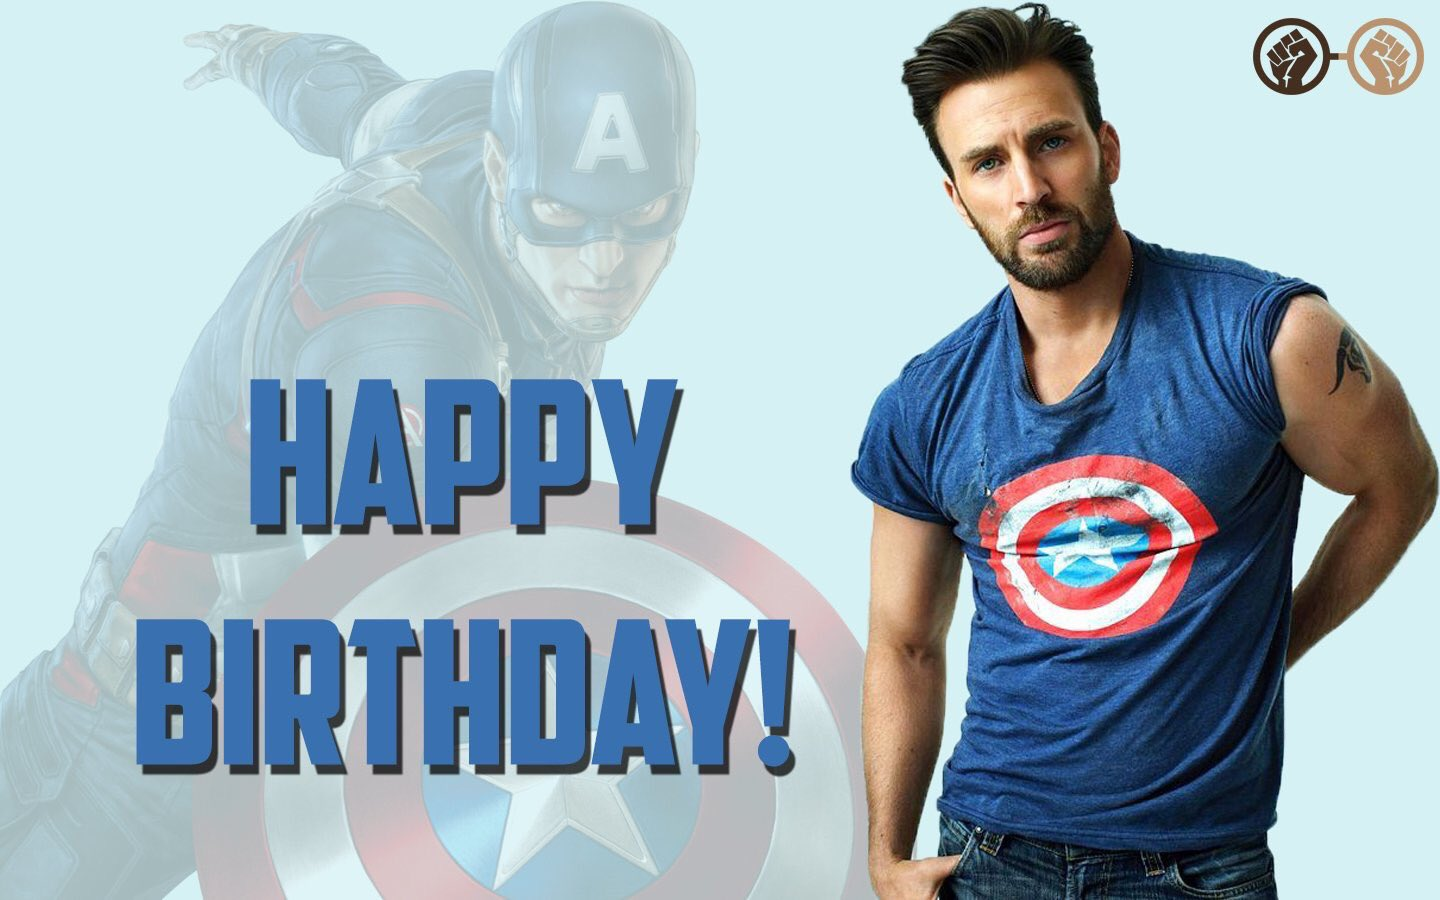 Happy birthday to Captain America himself, Chris Evans! The talented star turns 37 today. We wish him all the best!